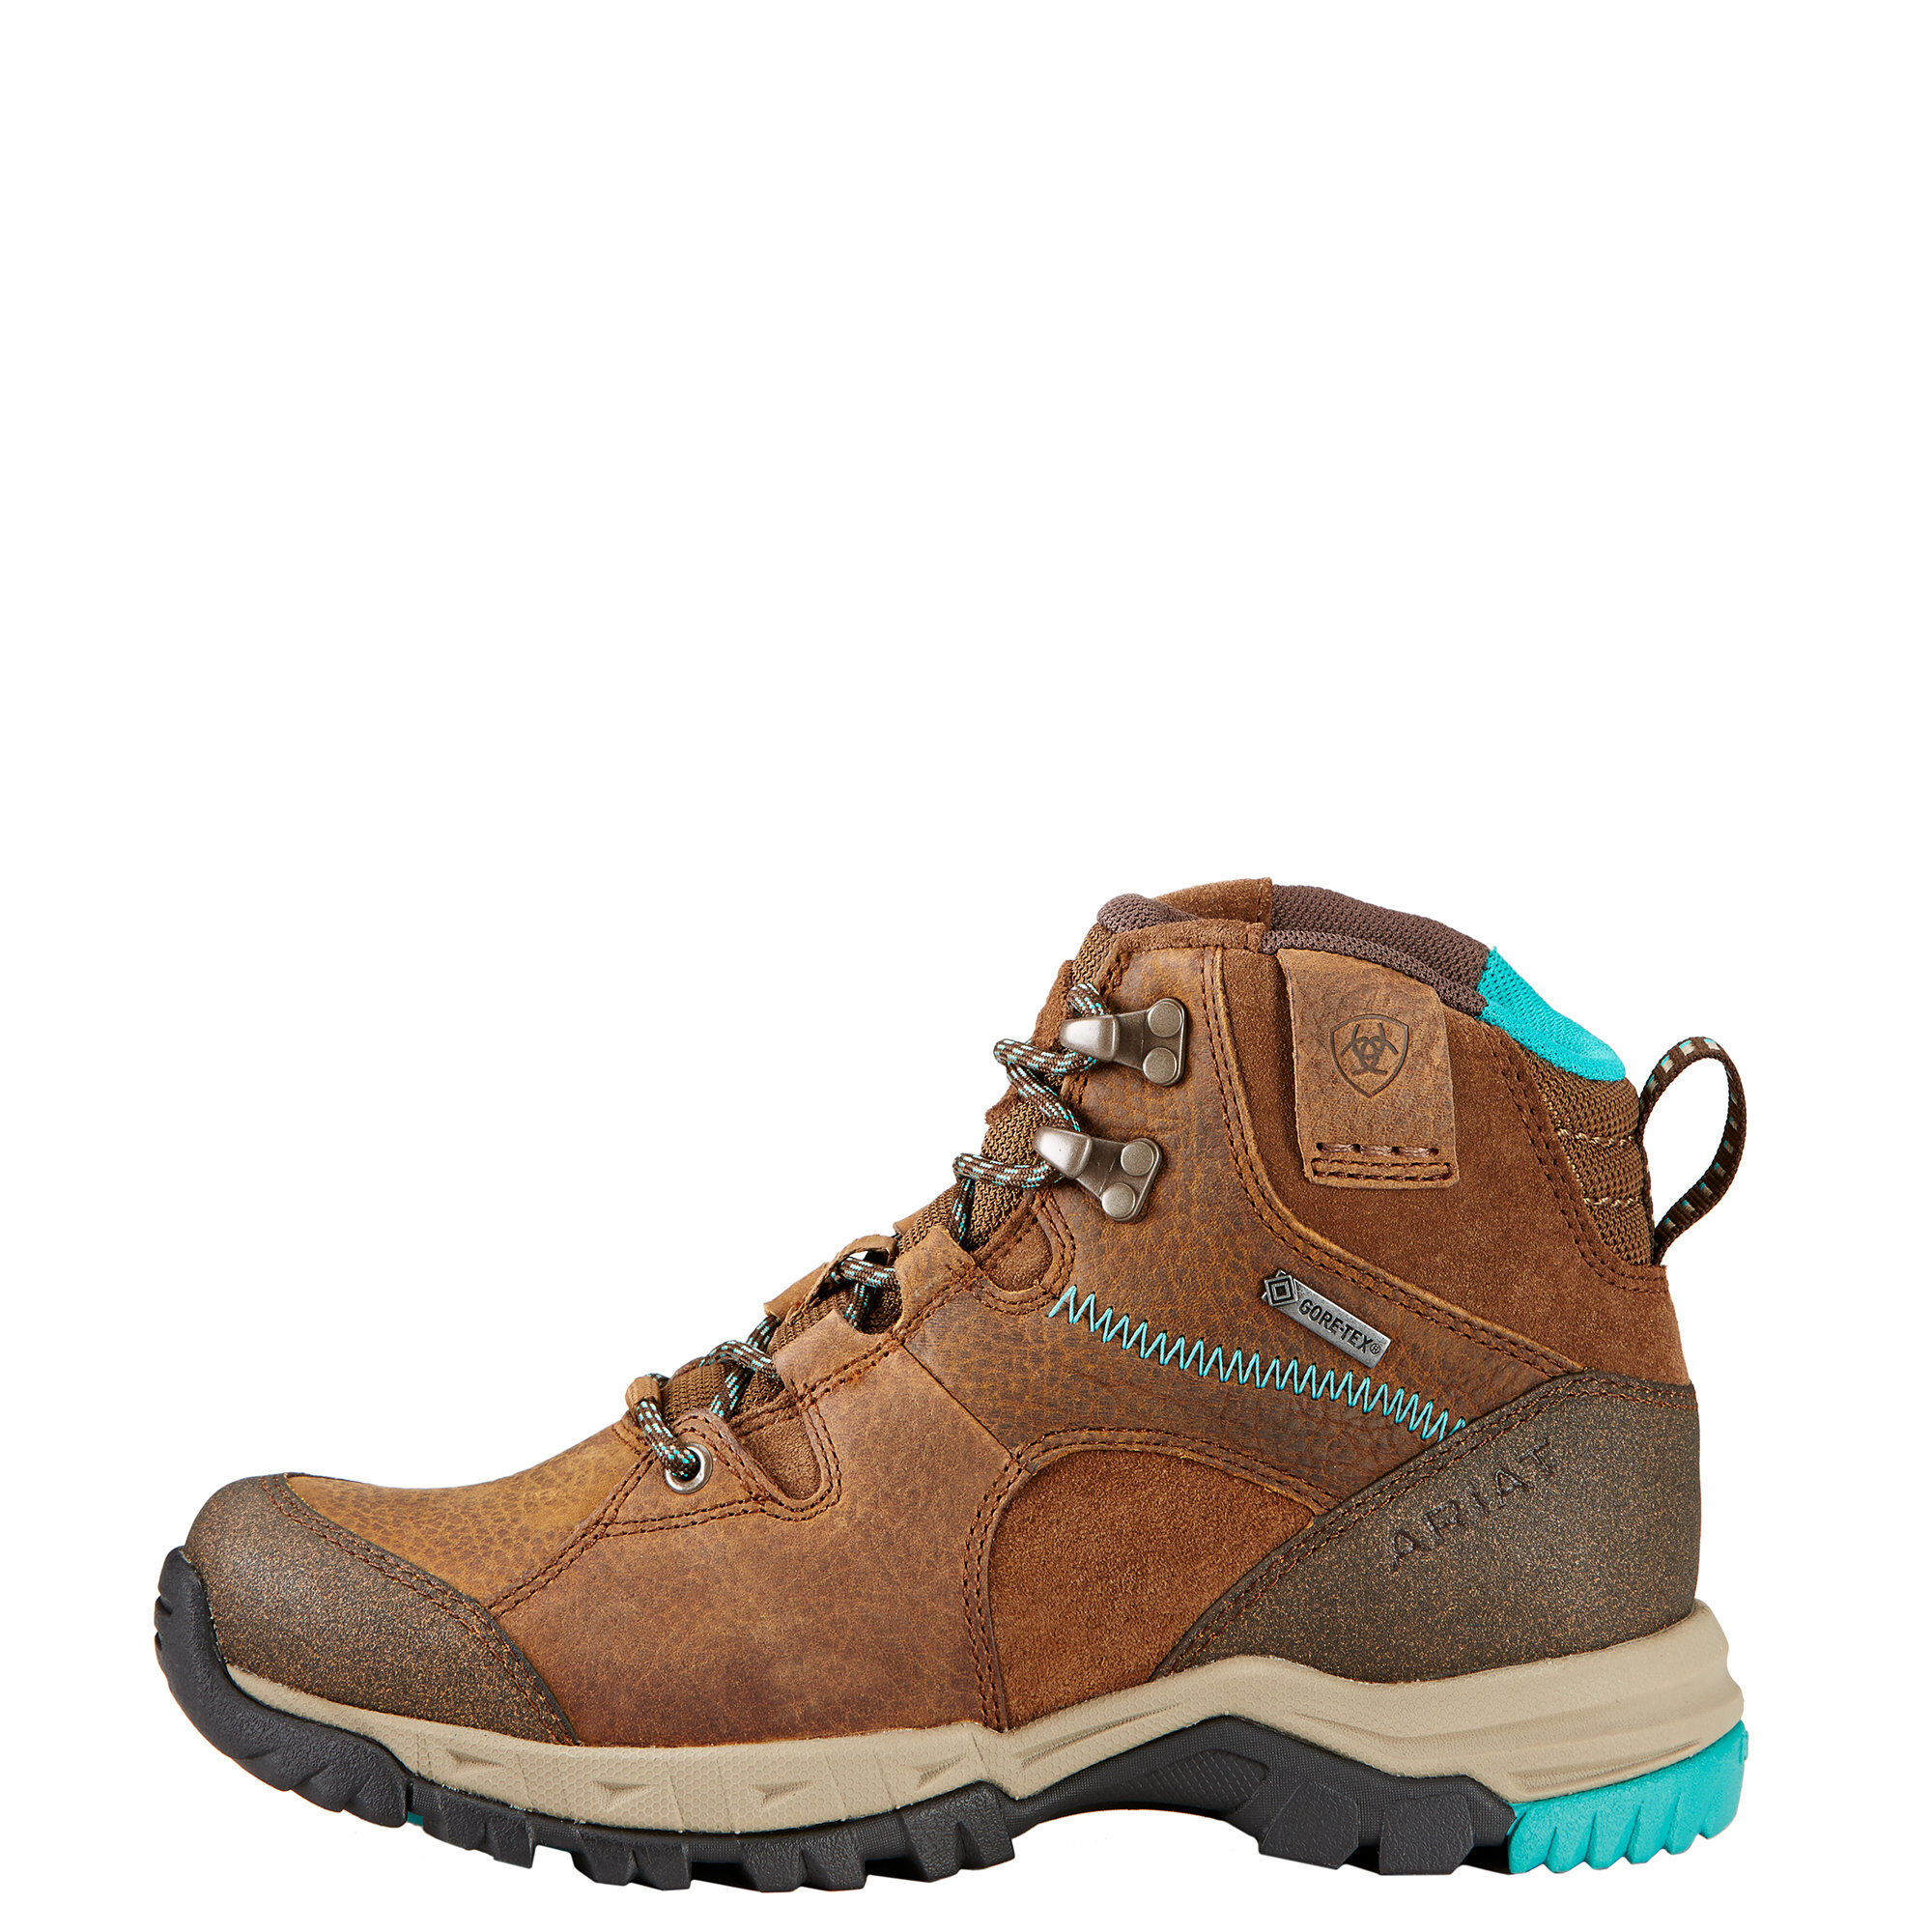 boots wolfskin most green flashing mid jack shoes texapore comforter comfortable hike waterproof men vojo hiking